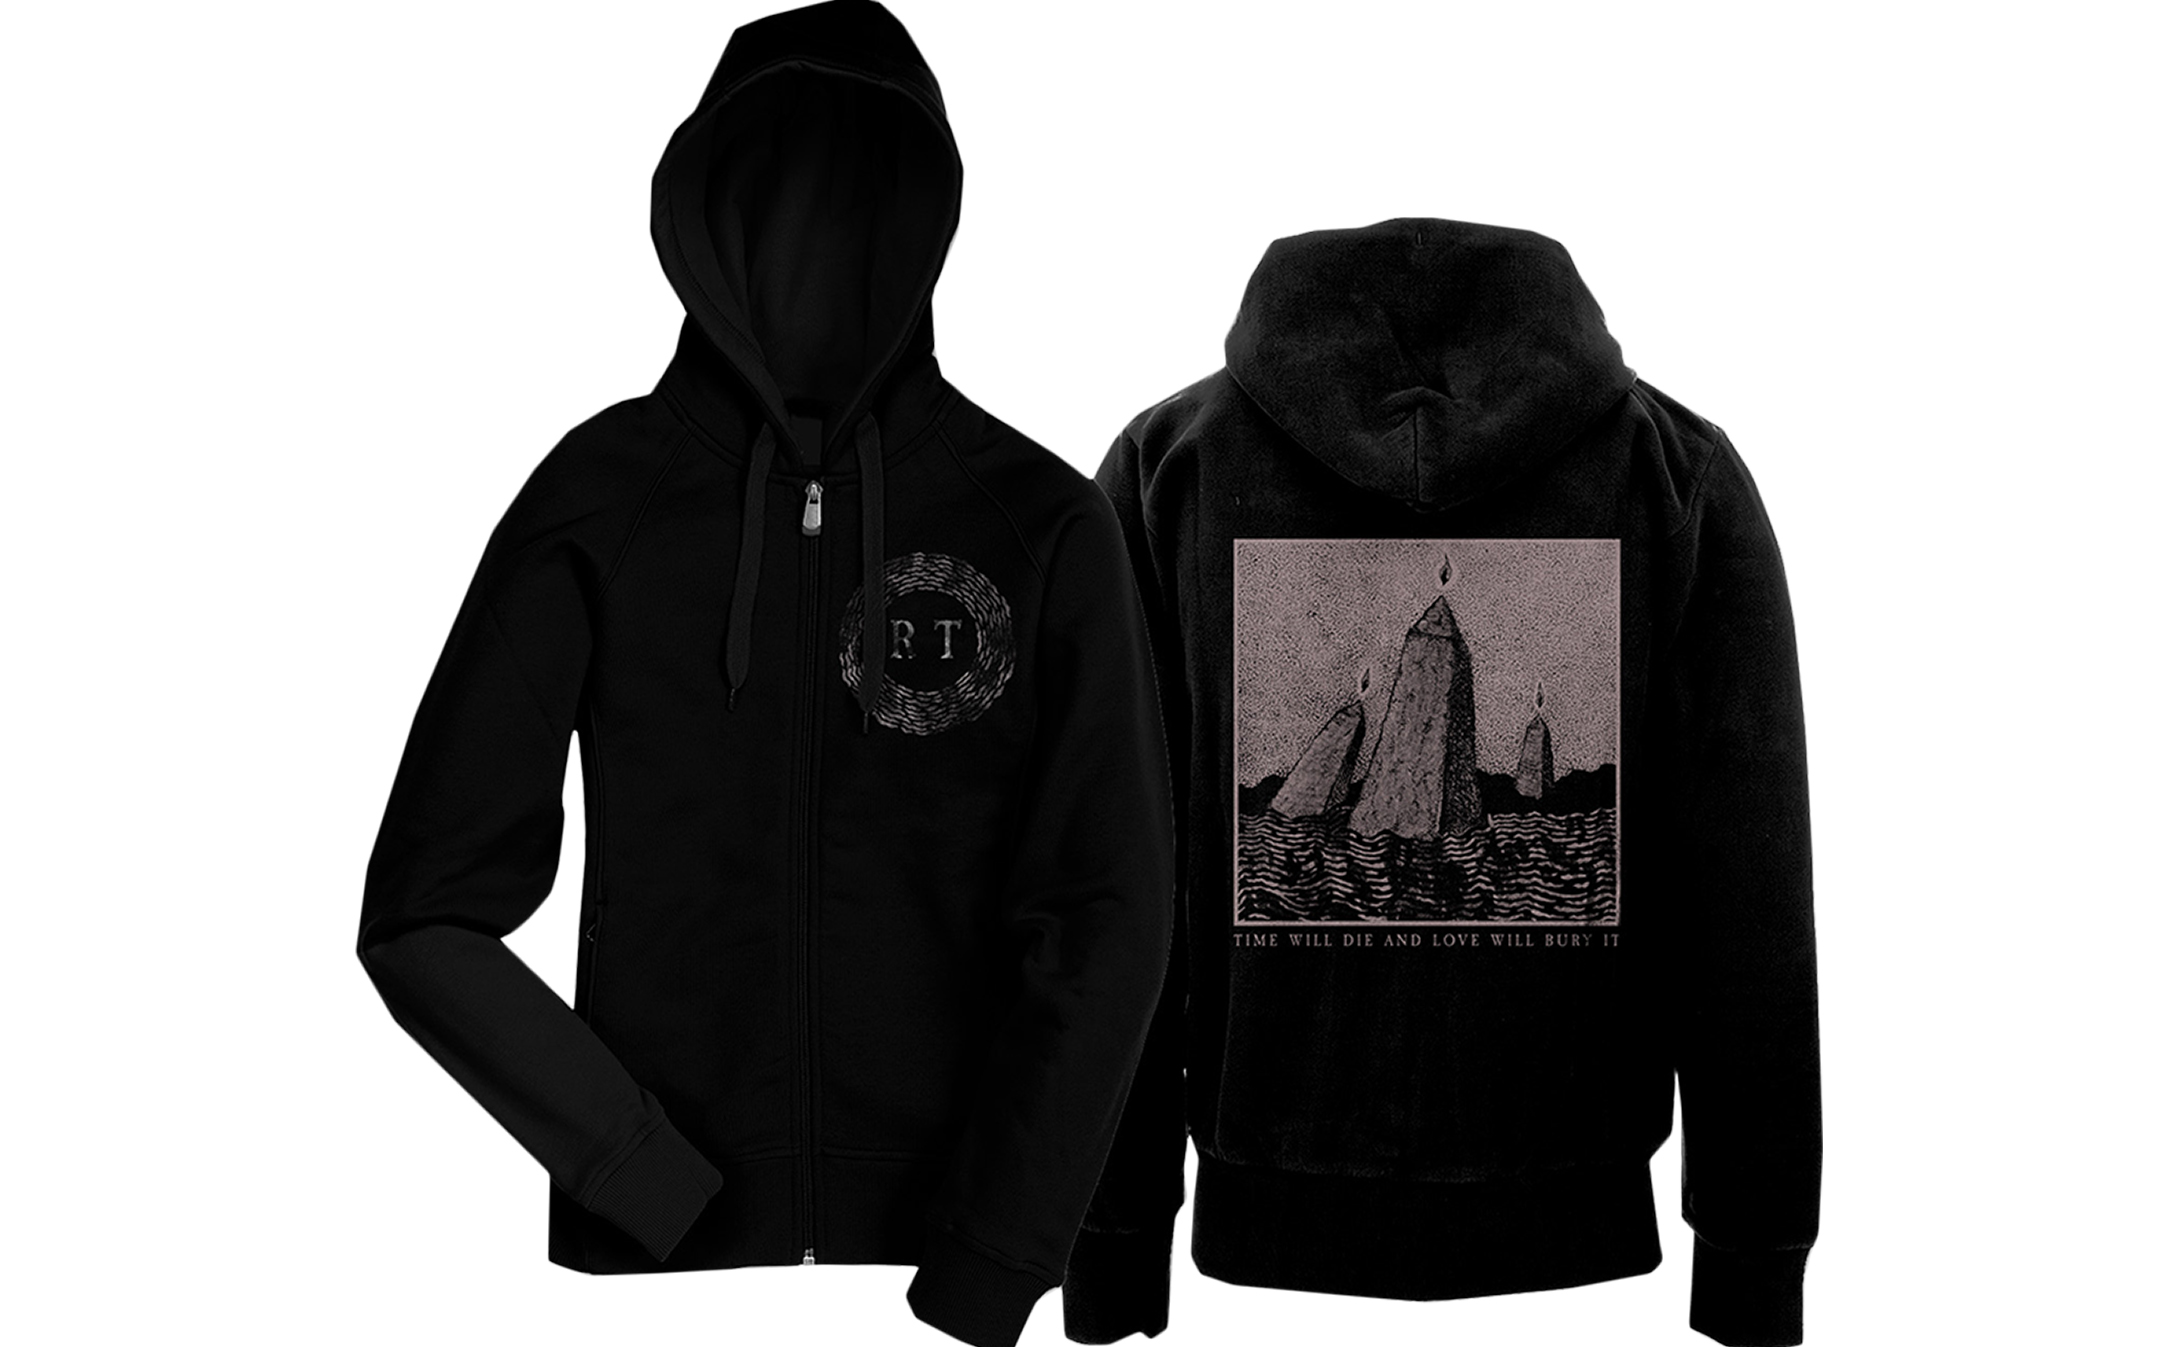 Rolo Tomassi - '...Love Will Bury It' zip-up hoodie